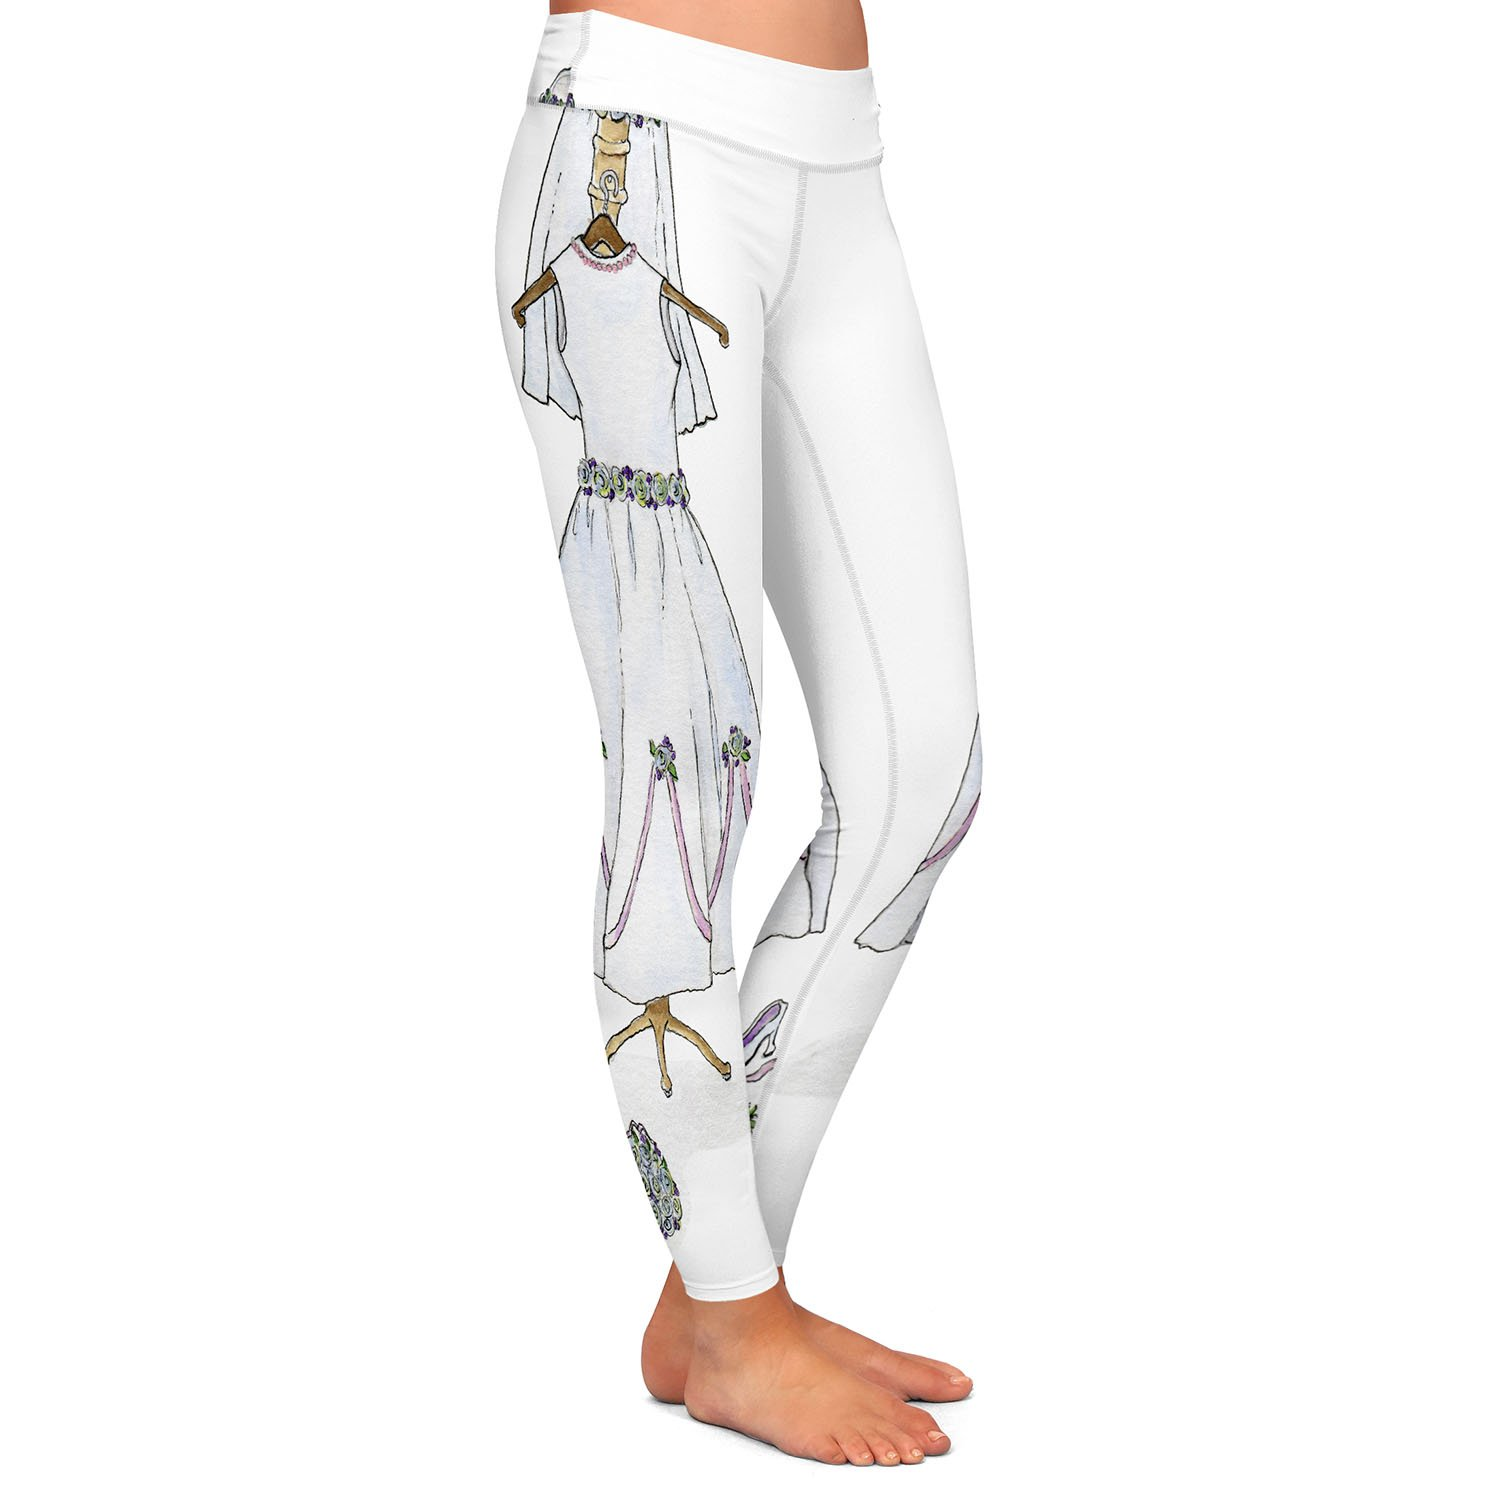 DiaNoche Designs Athletic Yoga Leggings from by Marley Ungaro - Wedding Dress